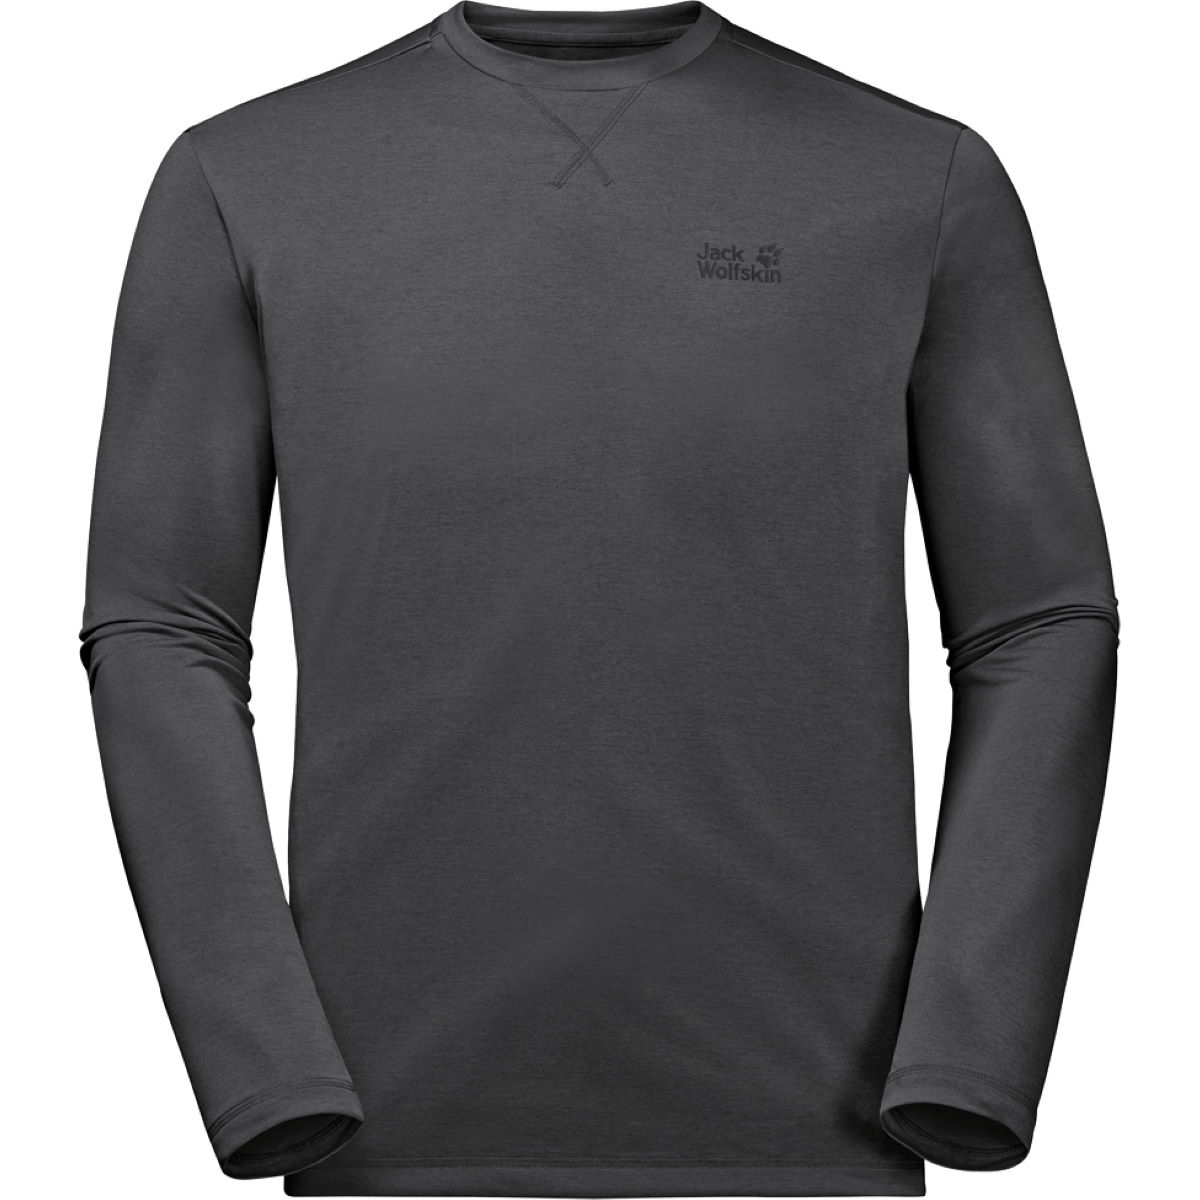 Maillot Jack Wolfskin Crosstrail (manches longues) - L Gris